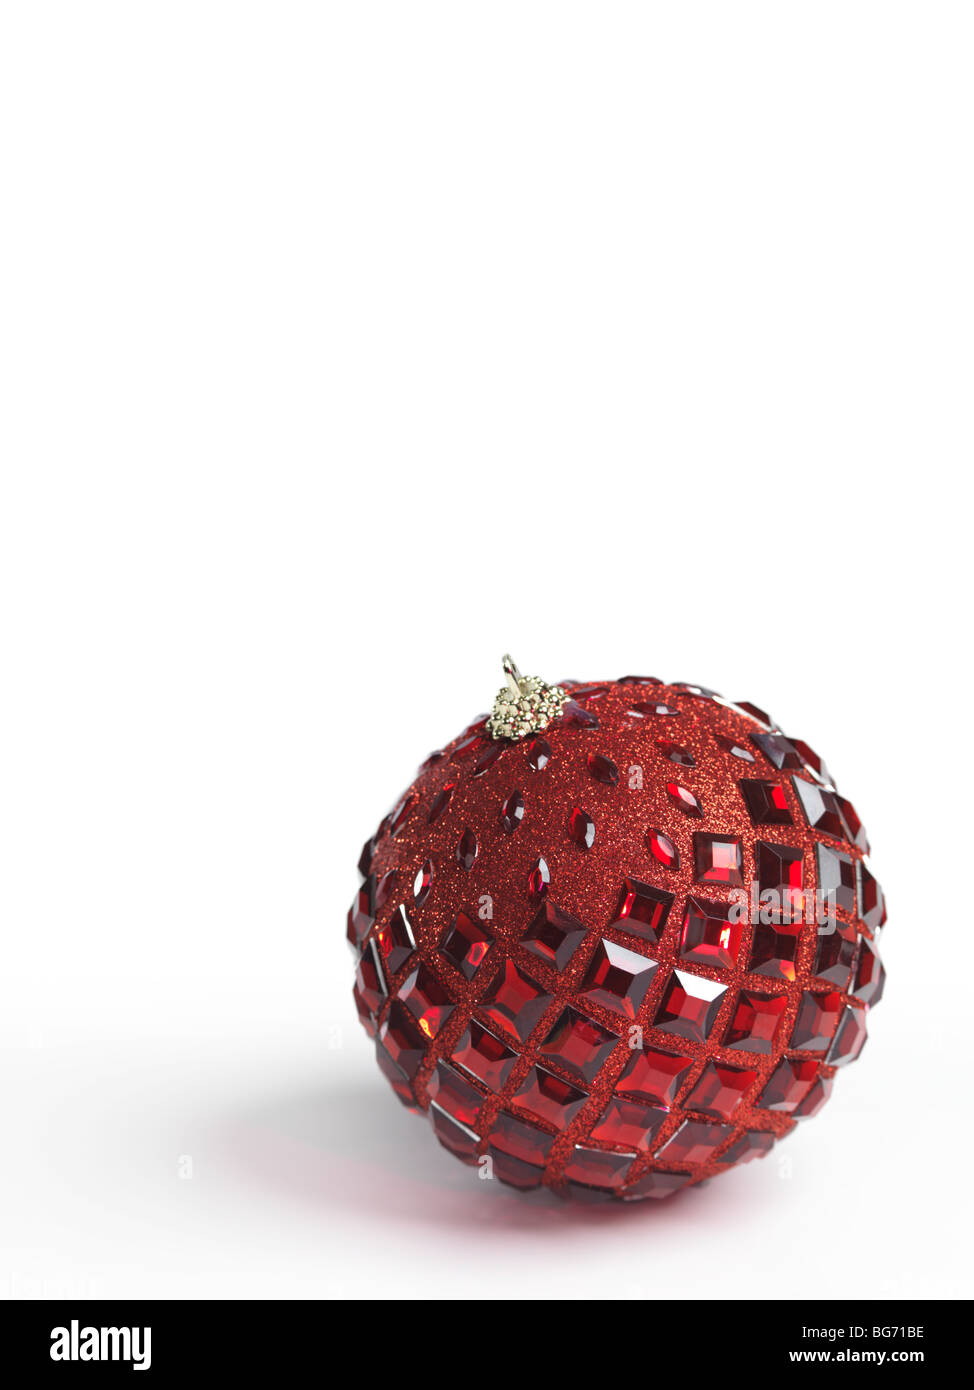 Christmas ornament isolated on white background Stock Photo